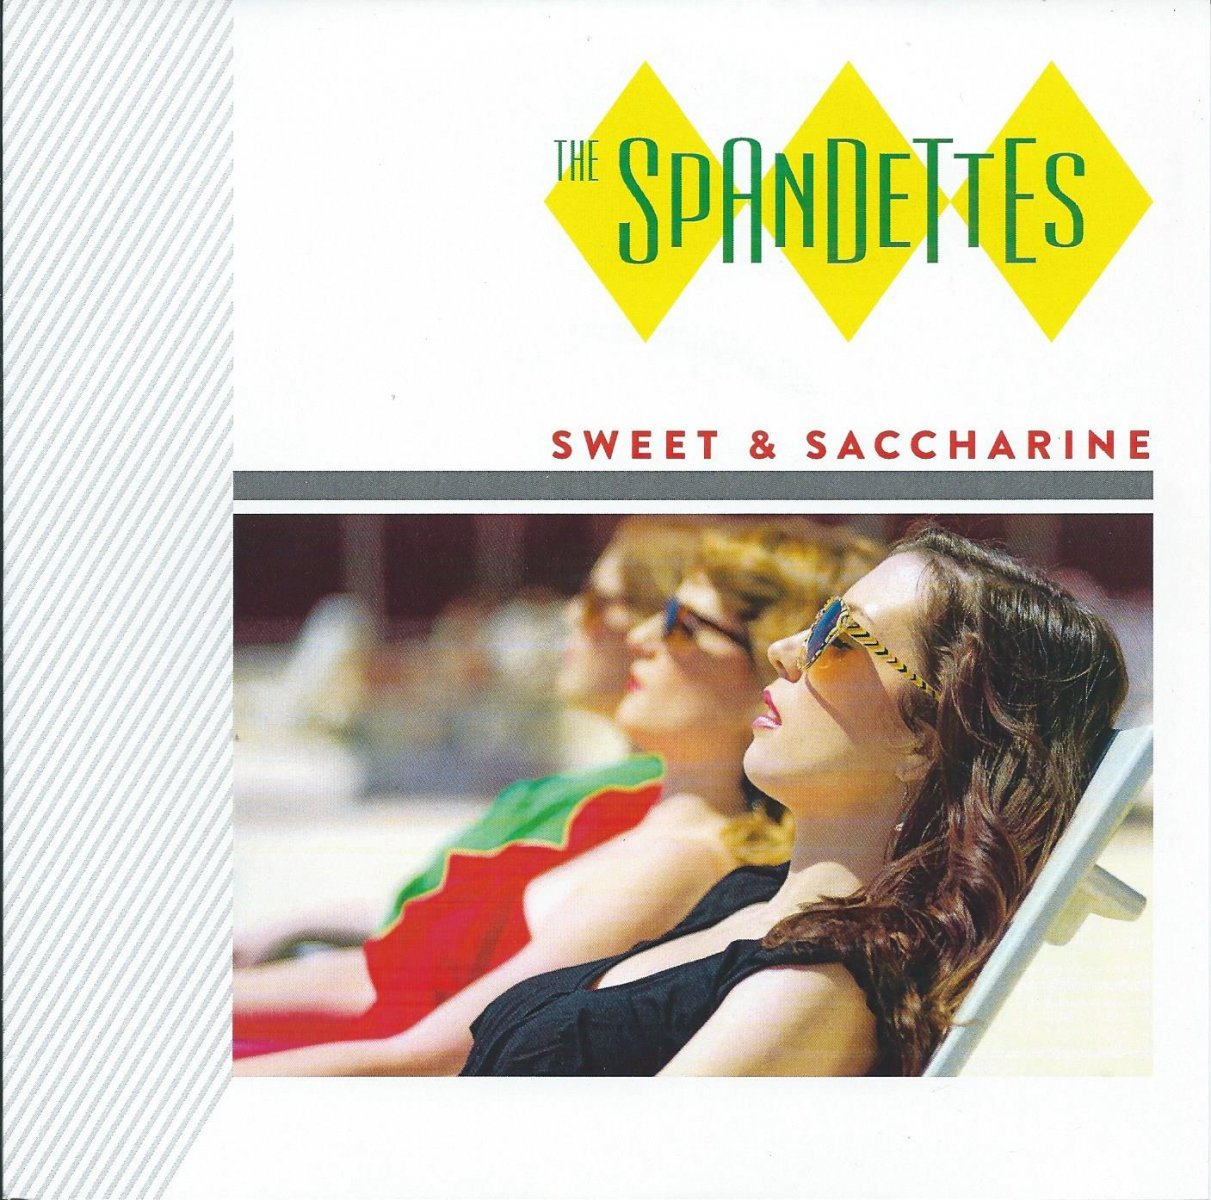 THE SPANDETTES / SWEET & SACCHARINE (7